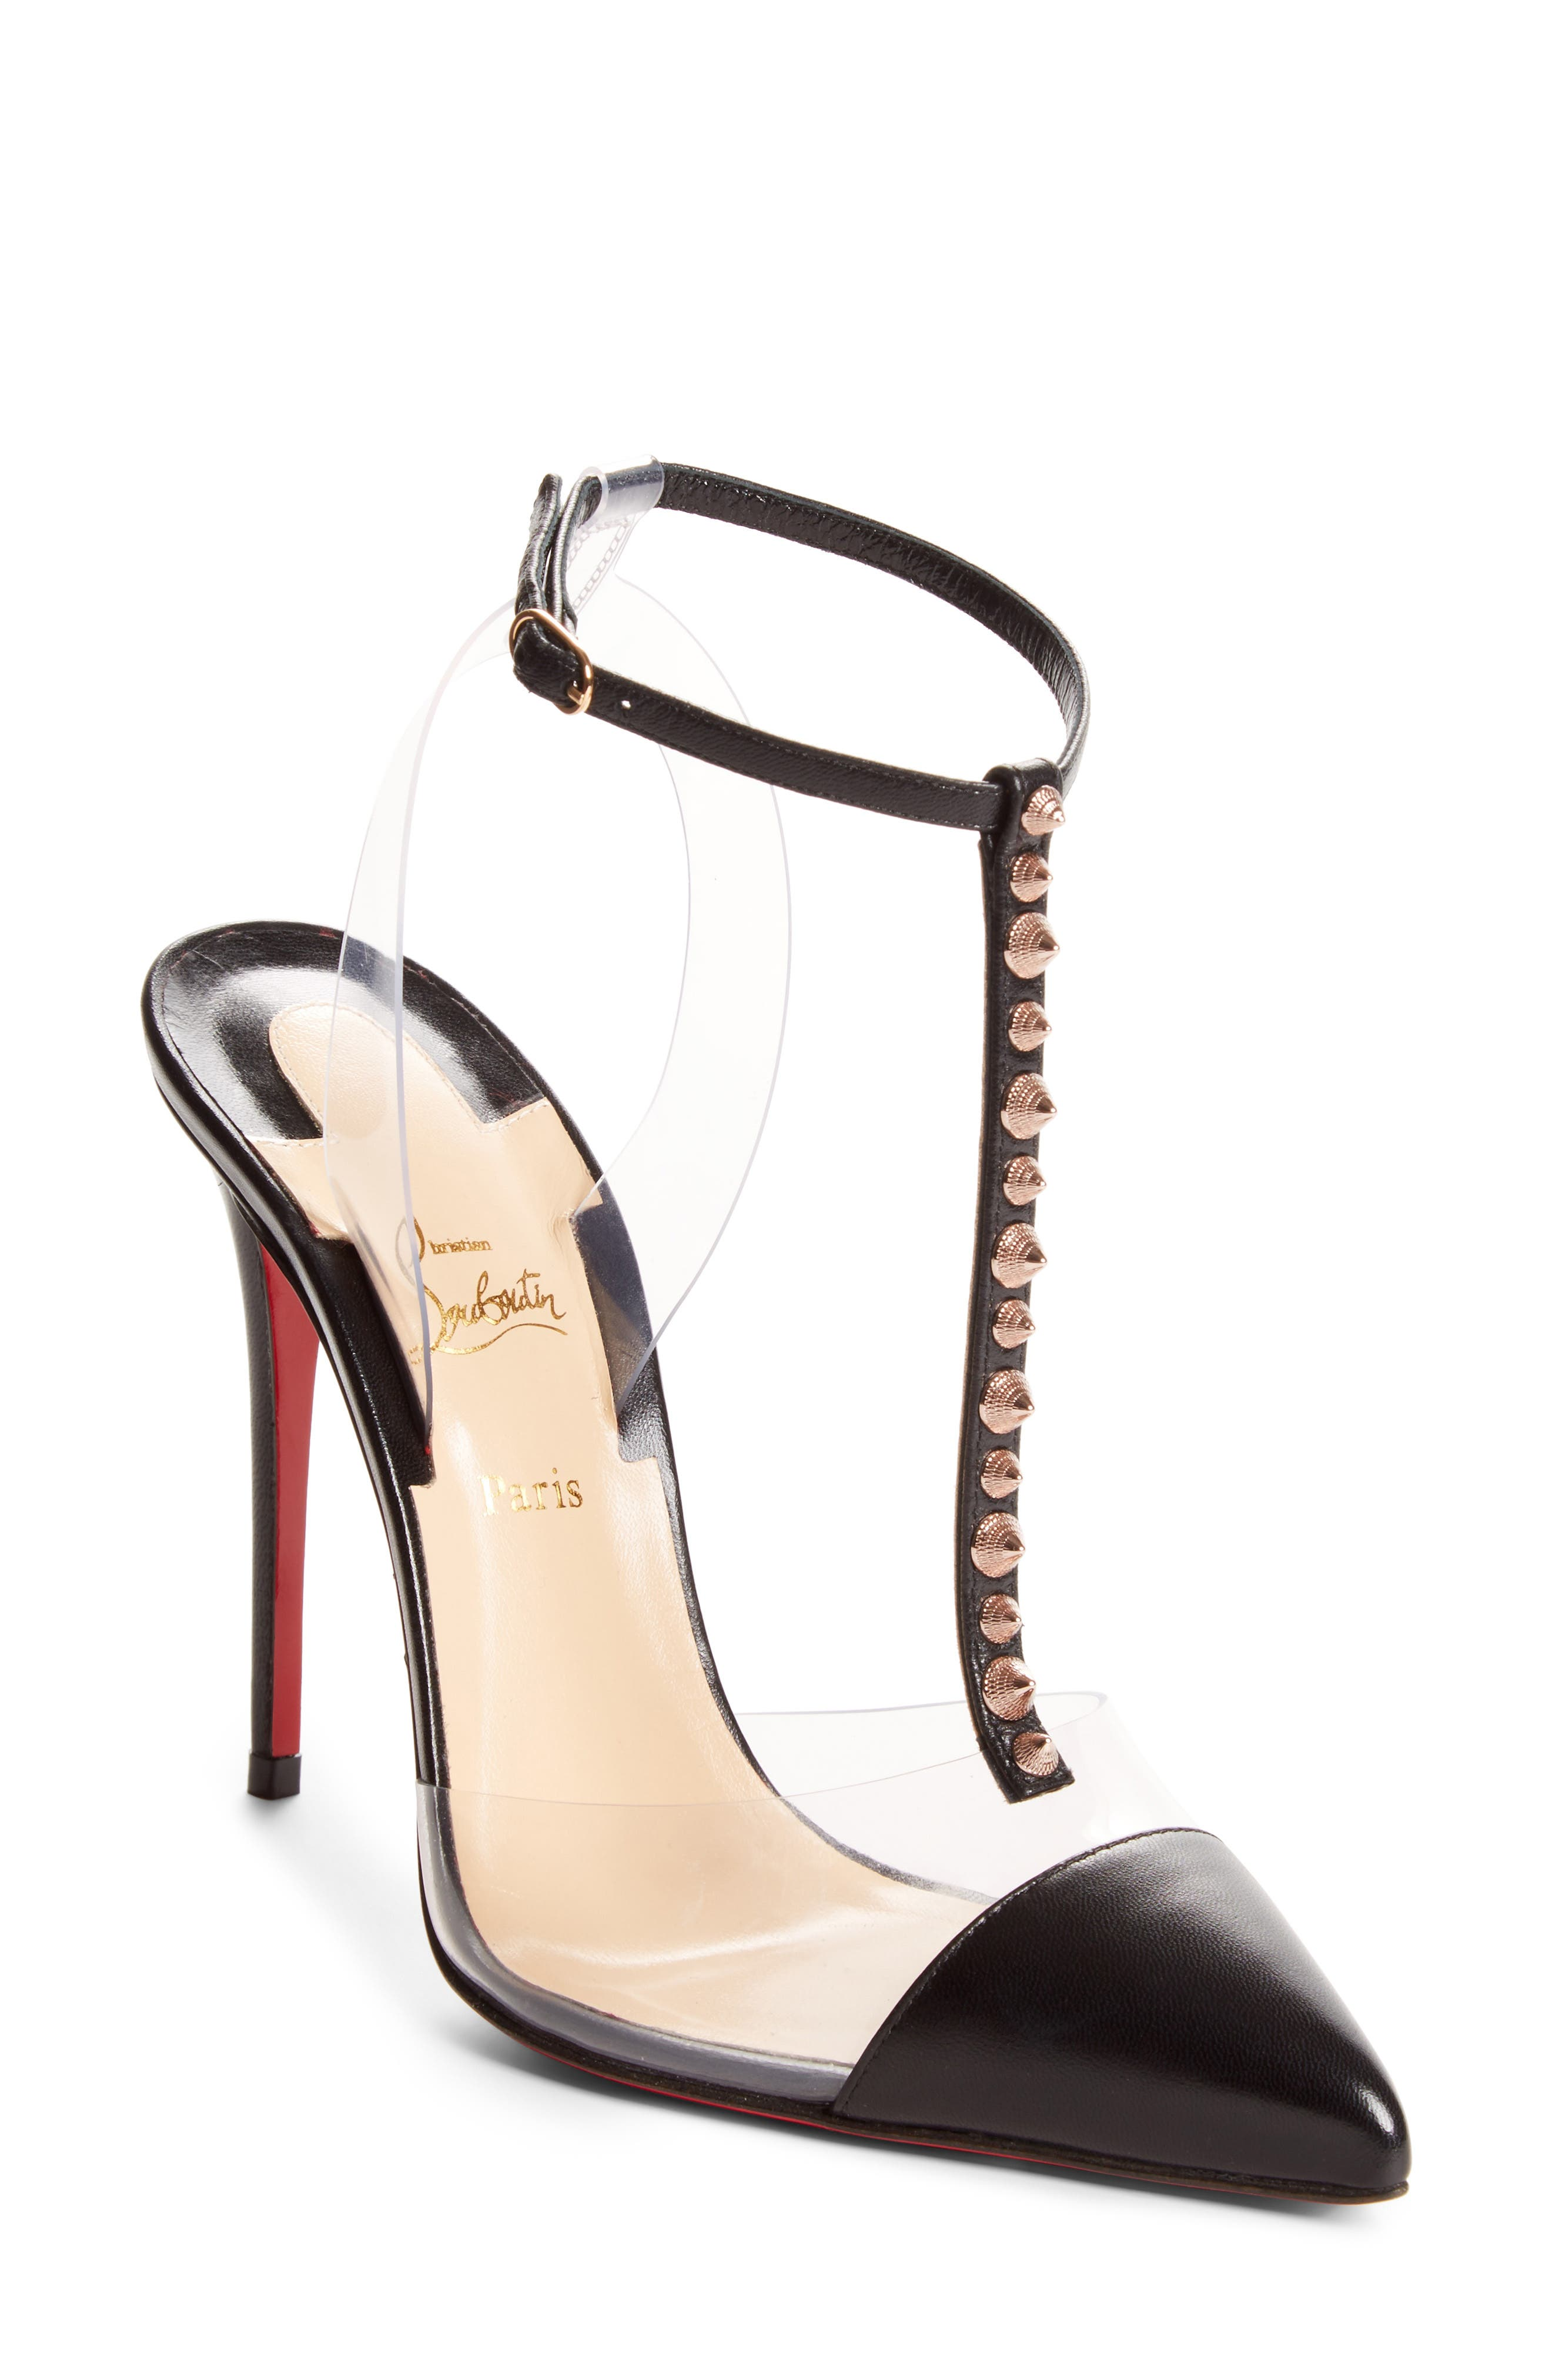 Alternate Image 1 Selected - Christian Louboutin Nosy Spikes PVC Pump (Women)